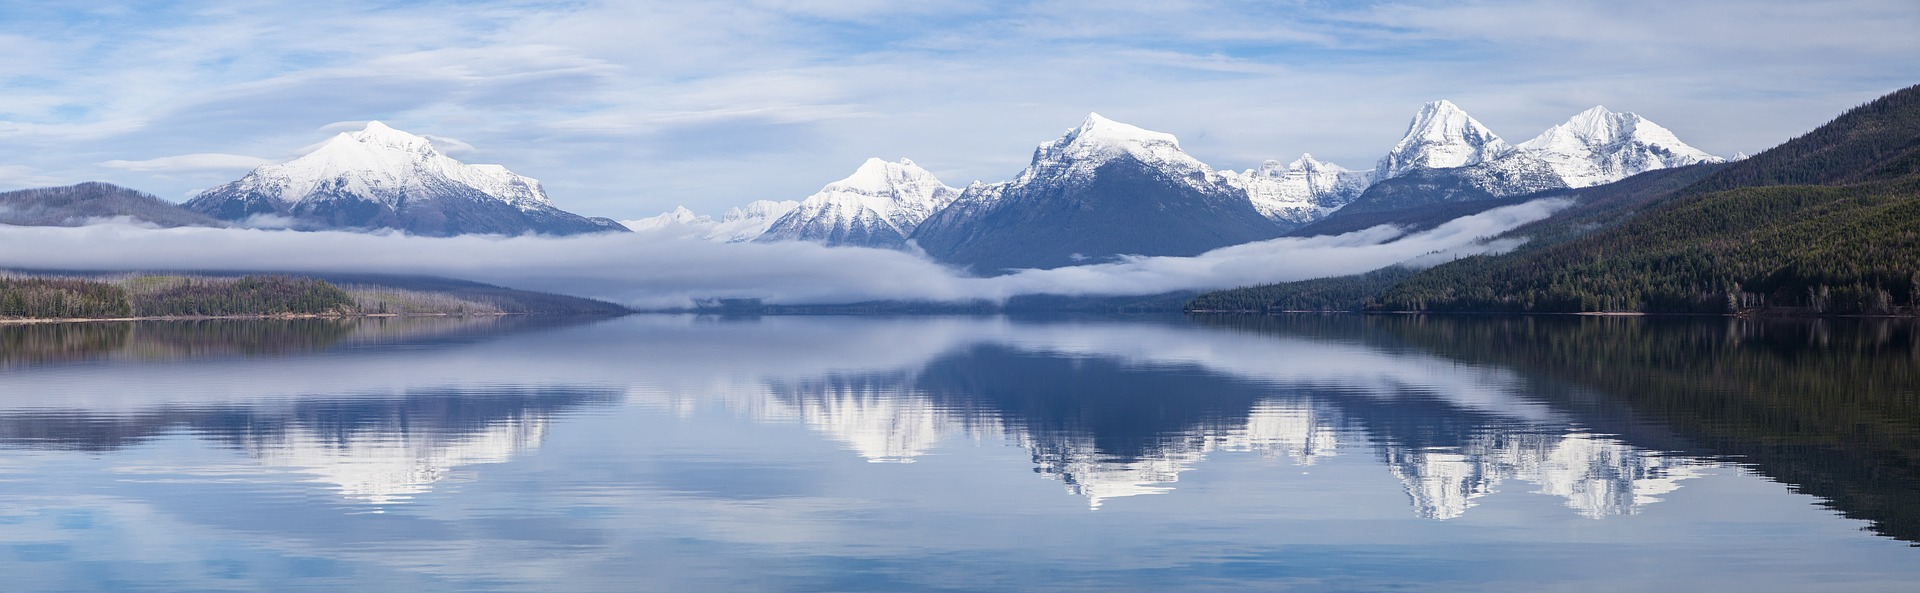 Lake Mcdonald, the largest lake in Glacier Park in Montana | Kids Car Donations